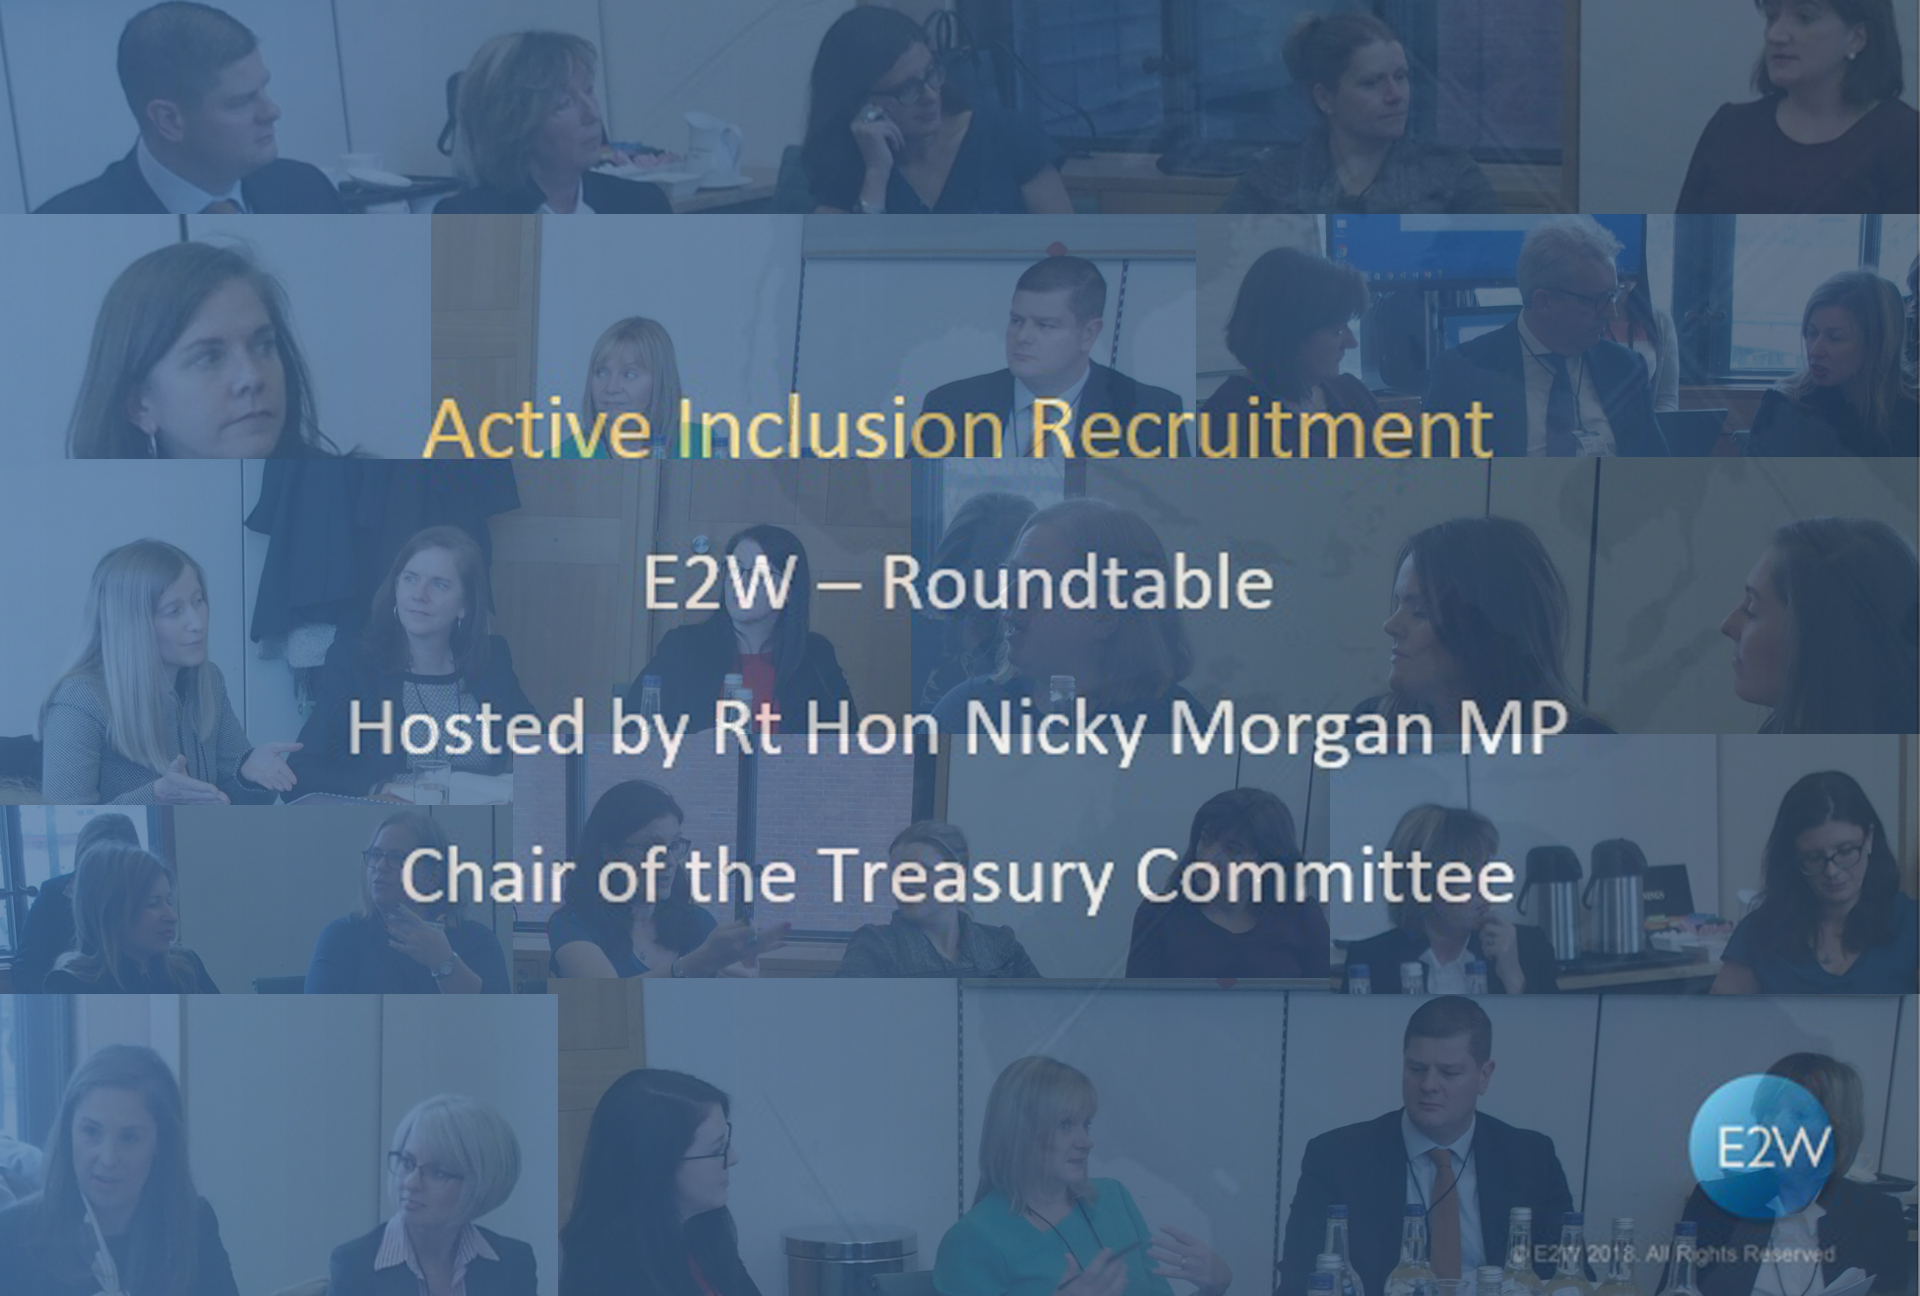 E2W Members and Clients get together with Nicky Morgan to discuss Active Inclusion Recruitment